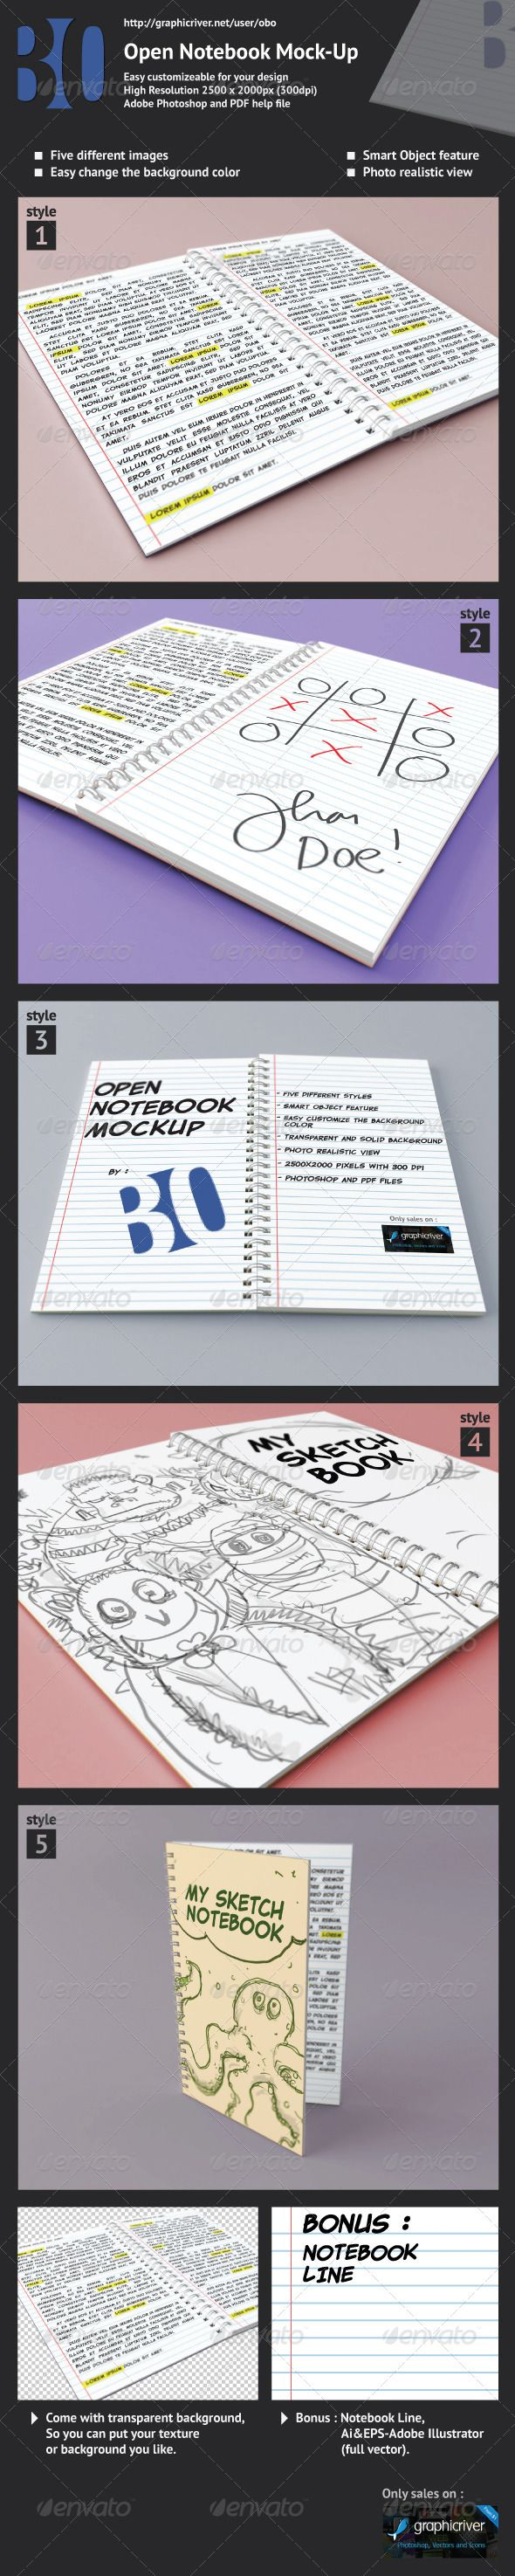 Open Notebook Mock-up  #GraphicRiver        Open Notebook Mock-Up With this mockup you can add your design and customize it with few simple step. Made this mock-up as a showcase to show your design more interactive. Let's make your work look good and professional. 	 Feature :   Five different styles  Photoshop (layered) and PDF Help (how to use)  Photo Realistic Mock-up with 2500×2000 pixels (300 dpi)  Smart Object  Transparent and Solid Background  Bonus file : Notebook Line-based on vector…